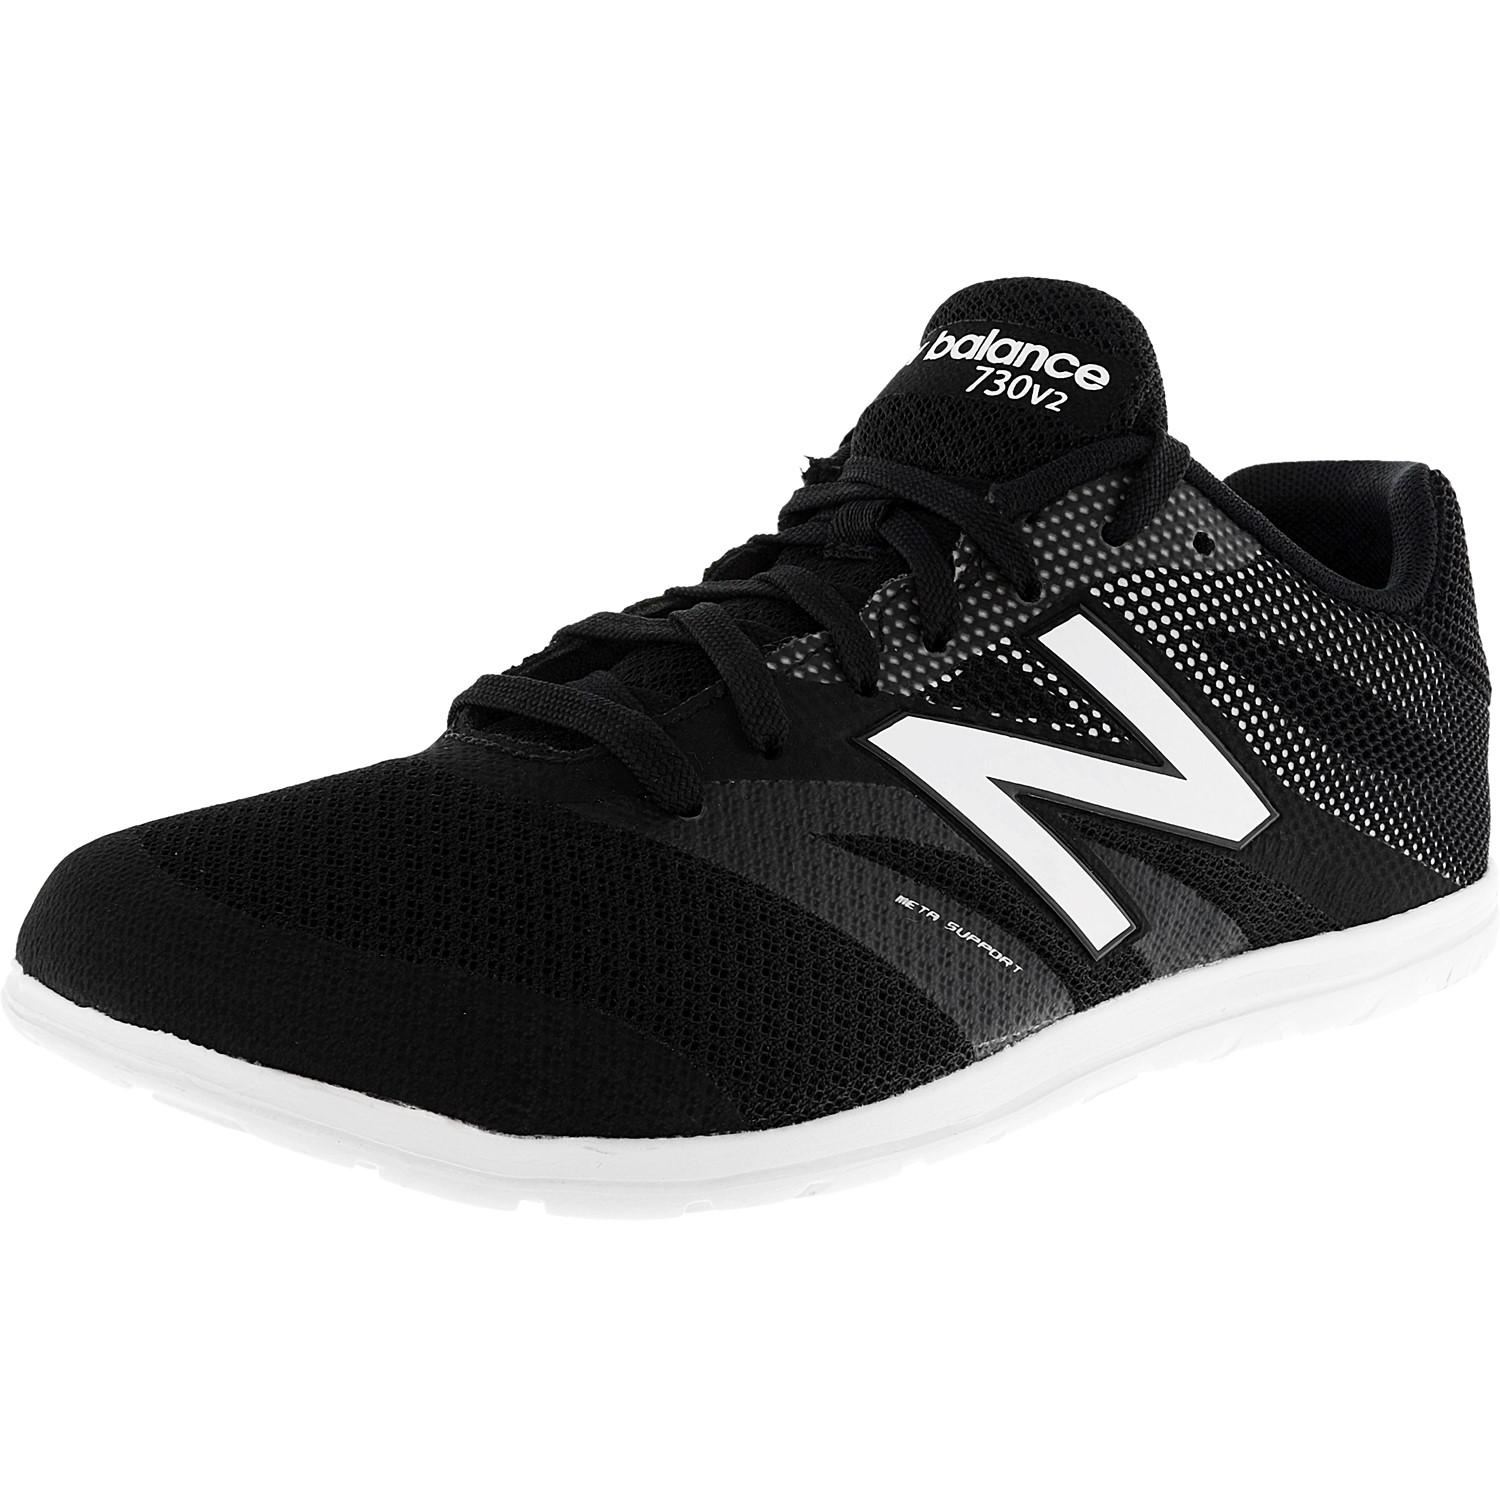 928cddfc47d22 Lyst - New Balance Wx730 Bk2 Ankle-high Cross Trainer Shoe in Black